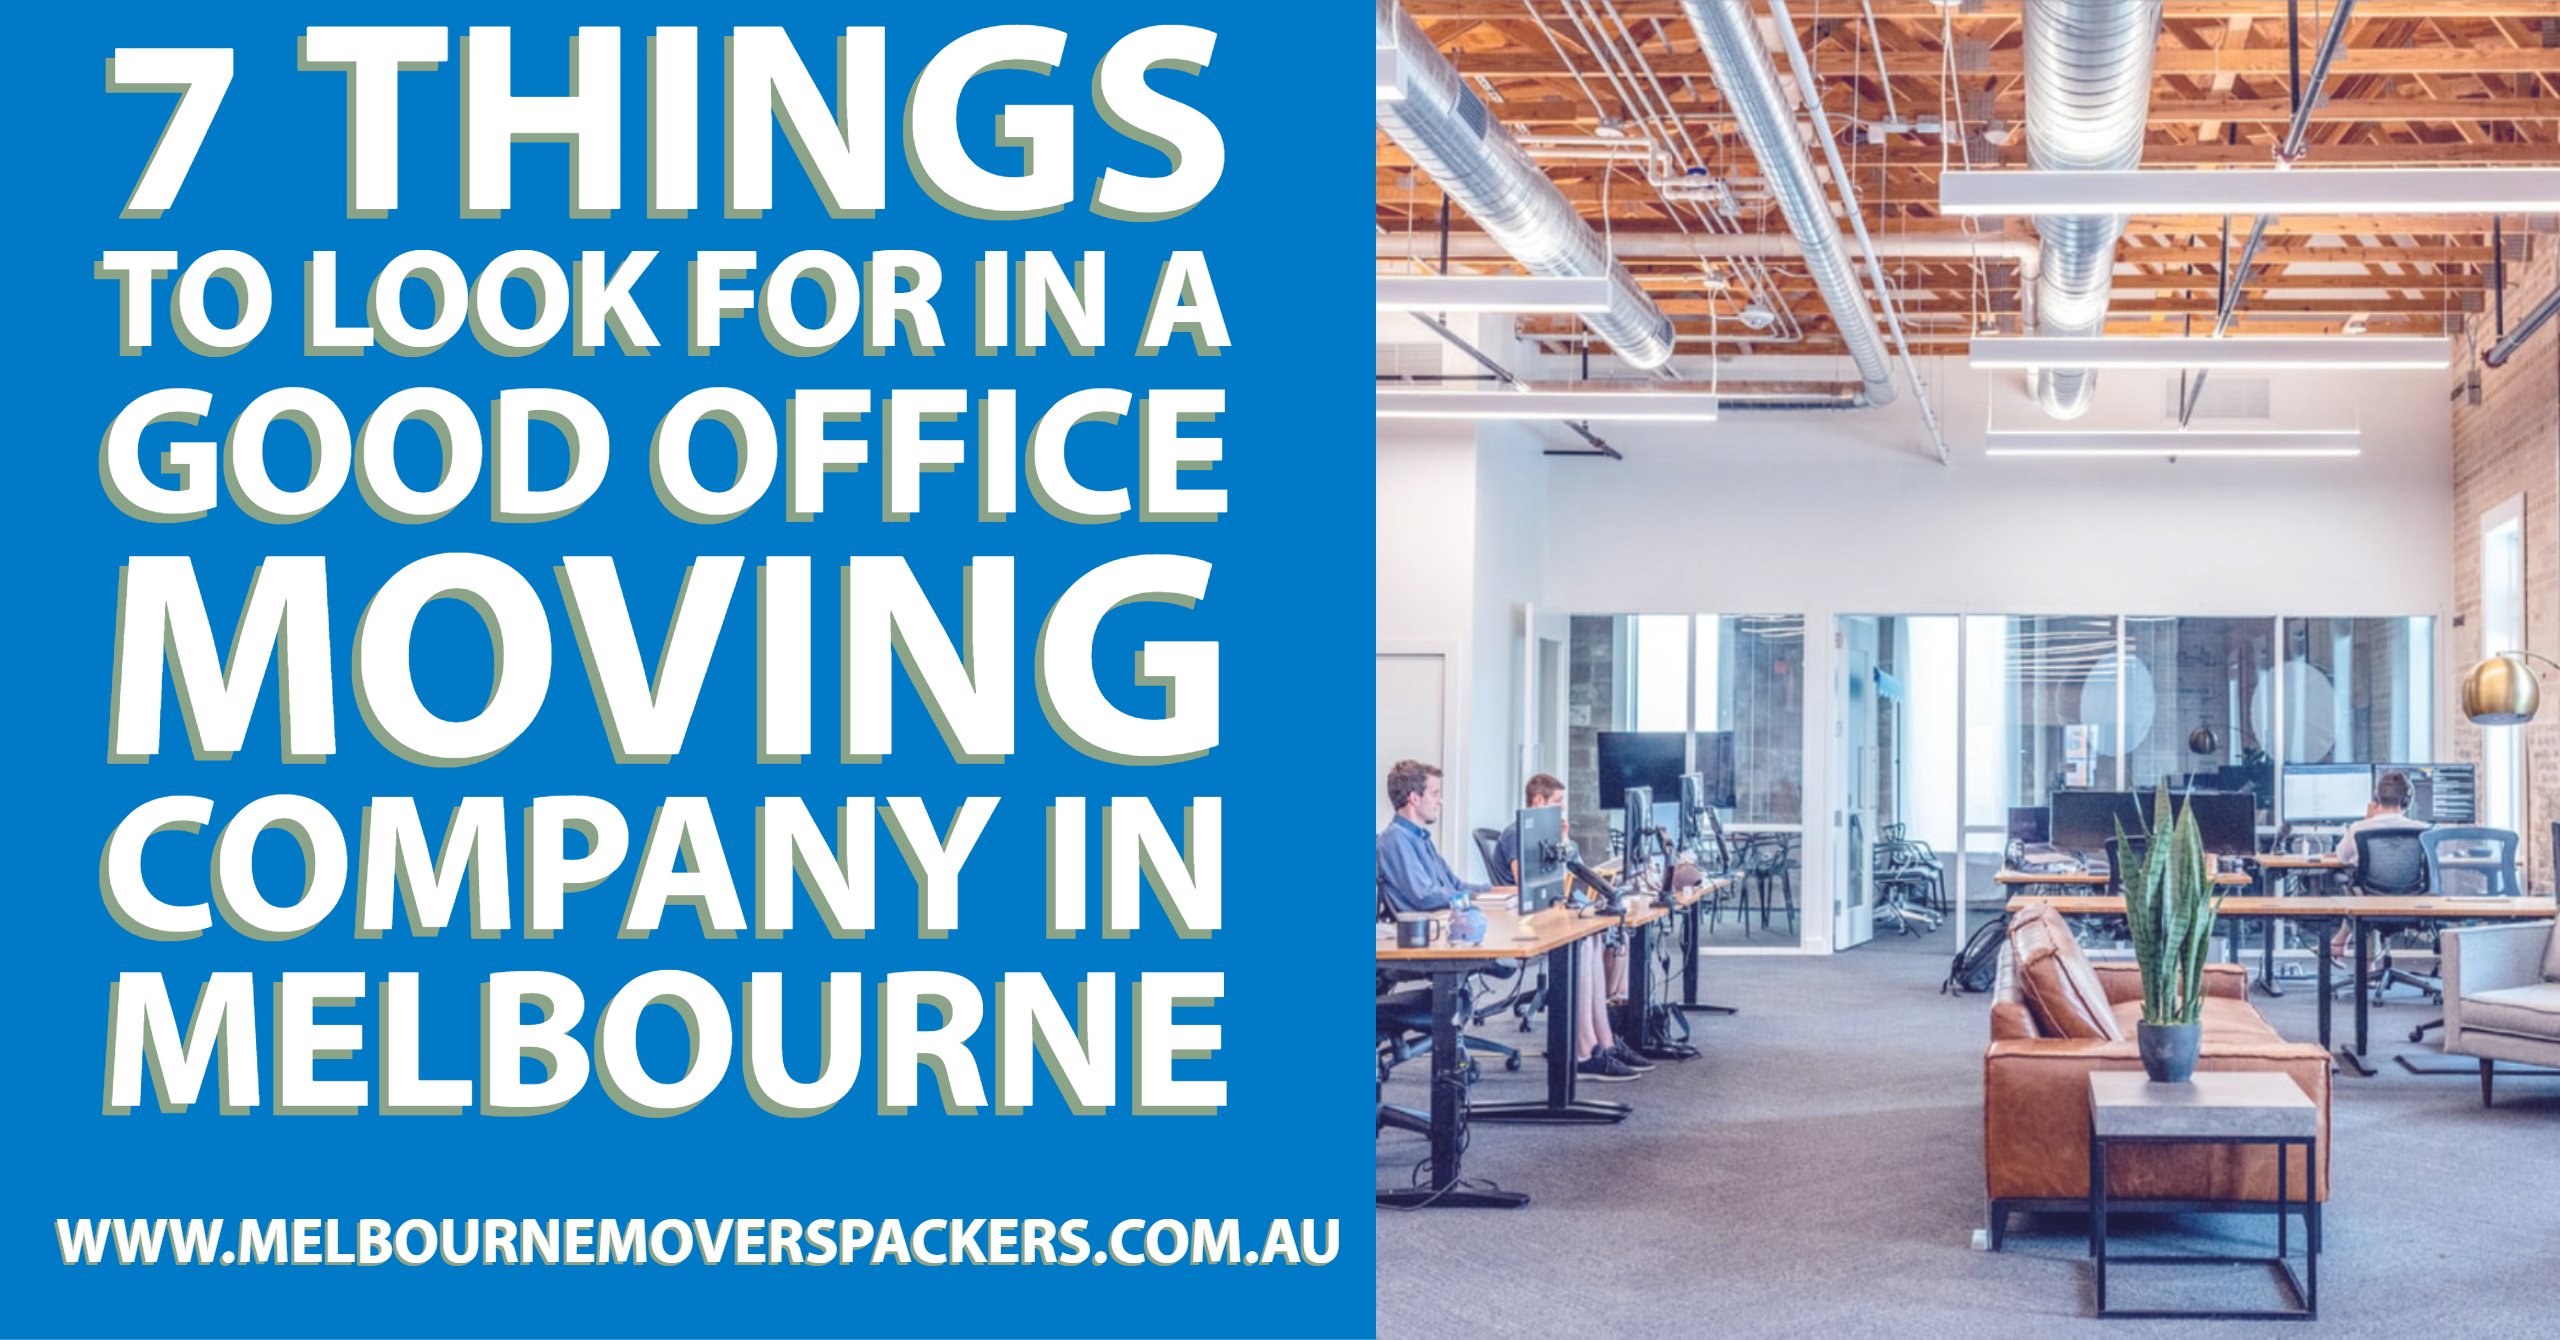 7 Things to Look for in a Good Office Moving Company in Melbourne